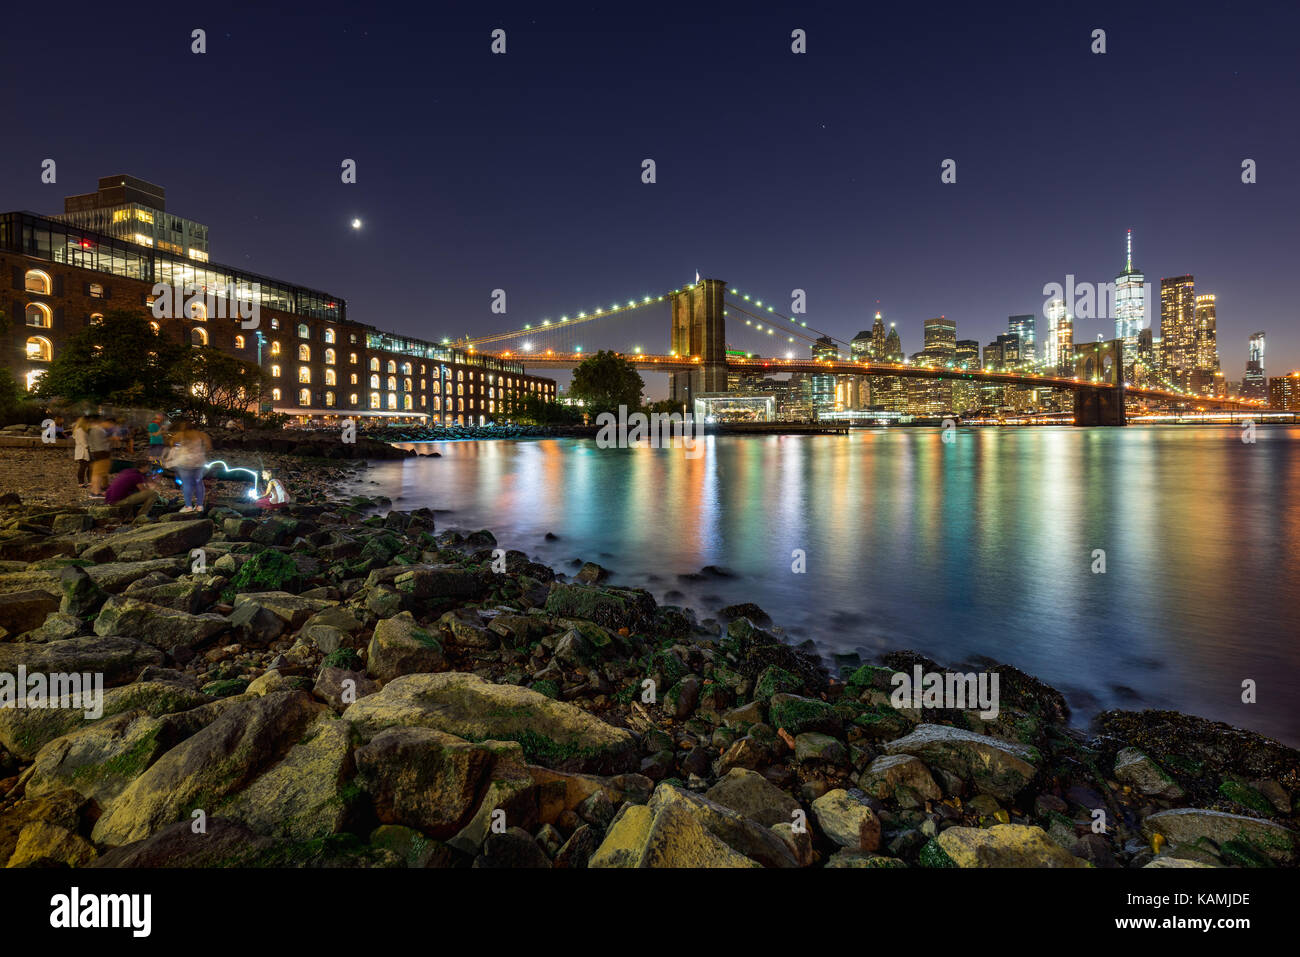 Evening in Main Street Park with view on the Financial District of Manhattan and the newly renovated Brooklyn waterfront. Dumbo, Brooklyn, New York Ci Stock Photo